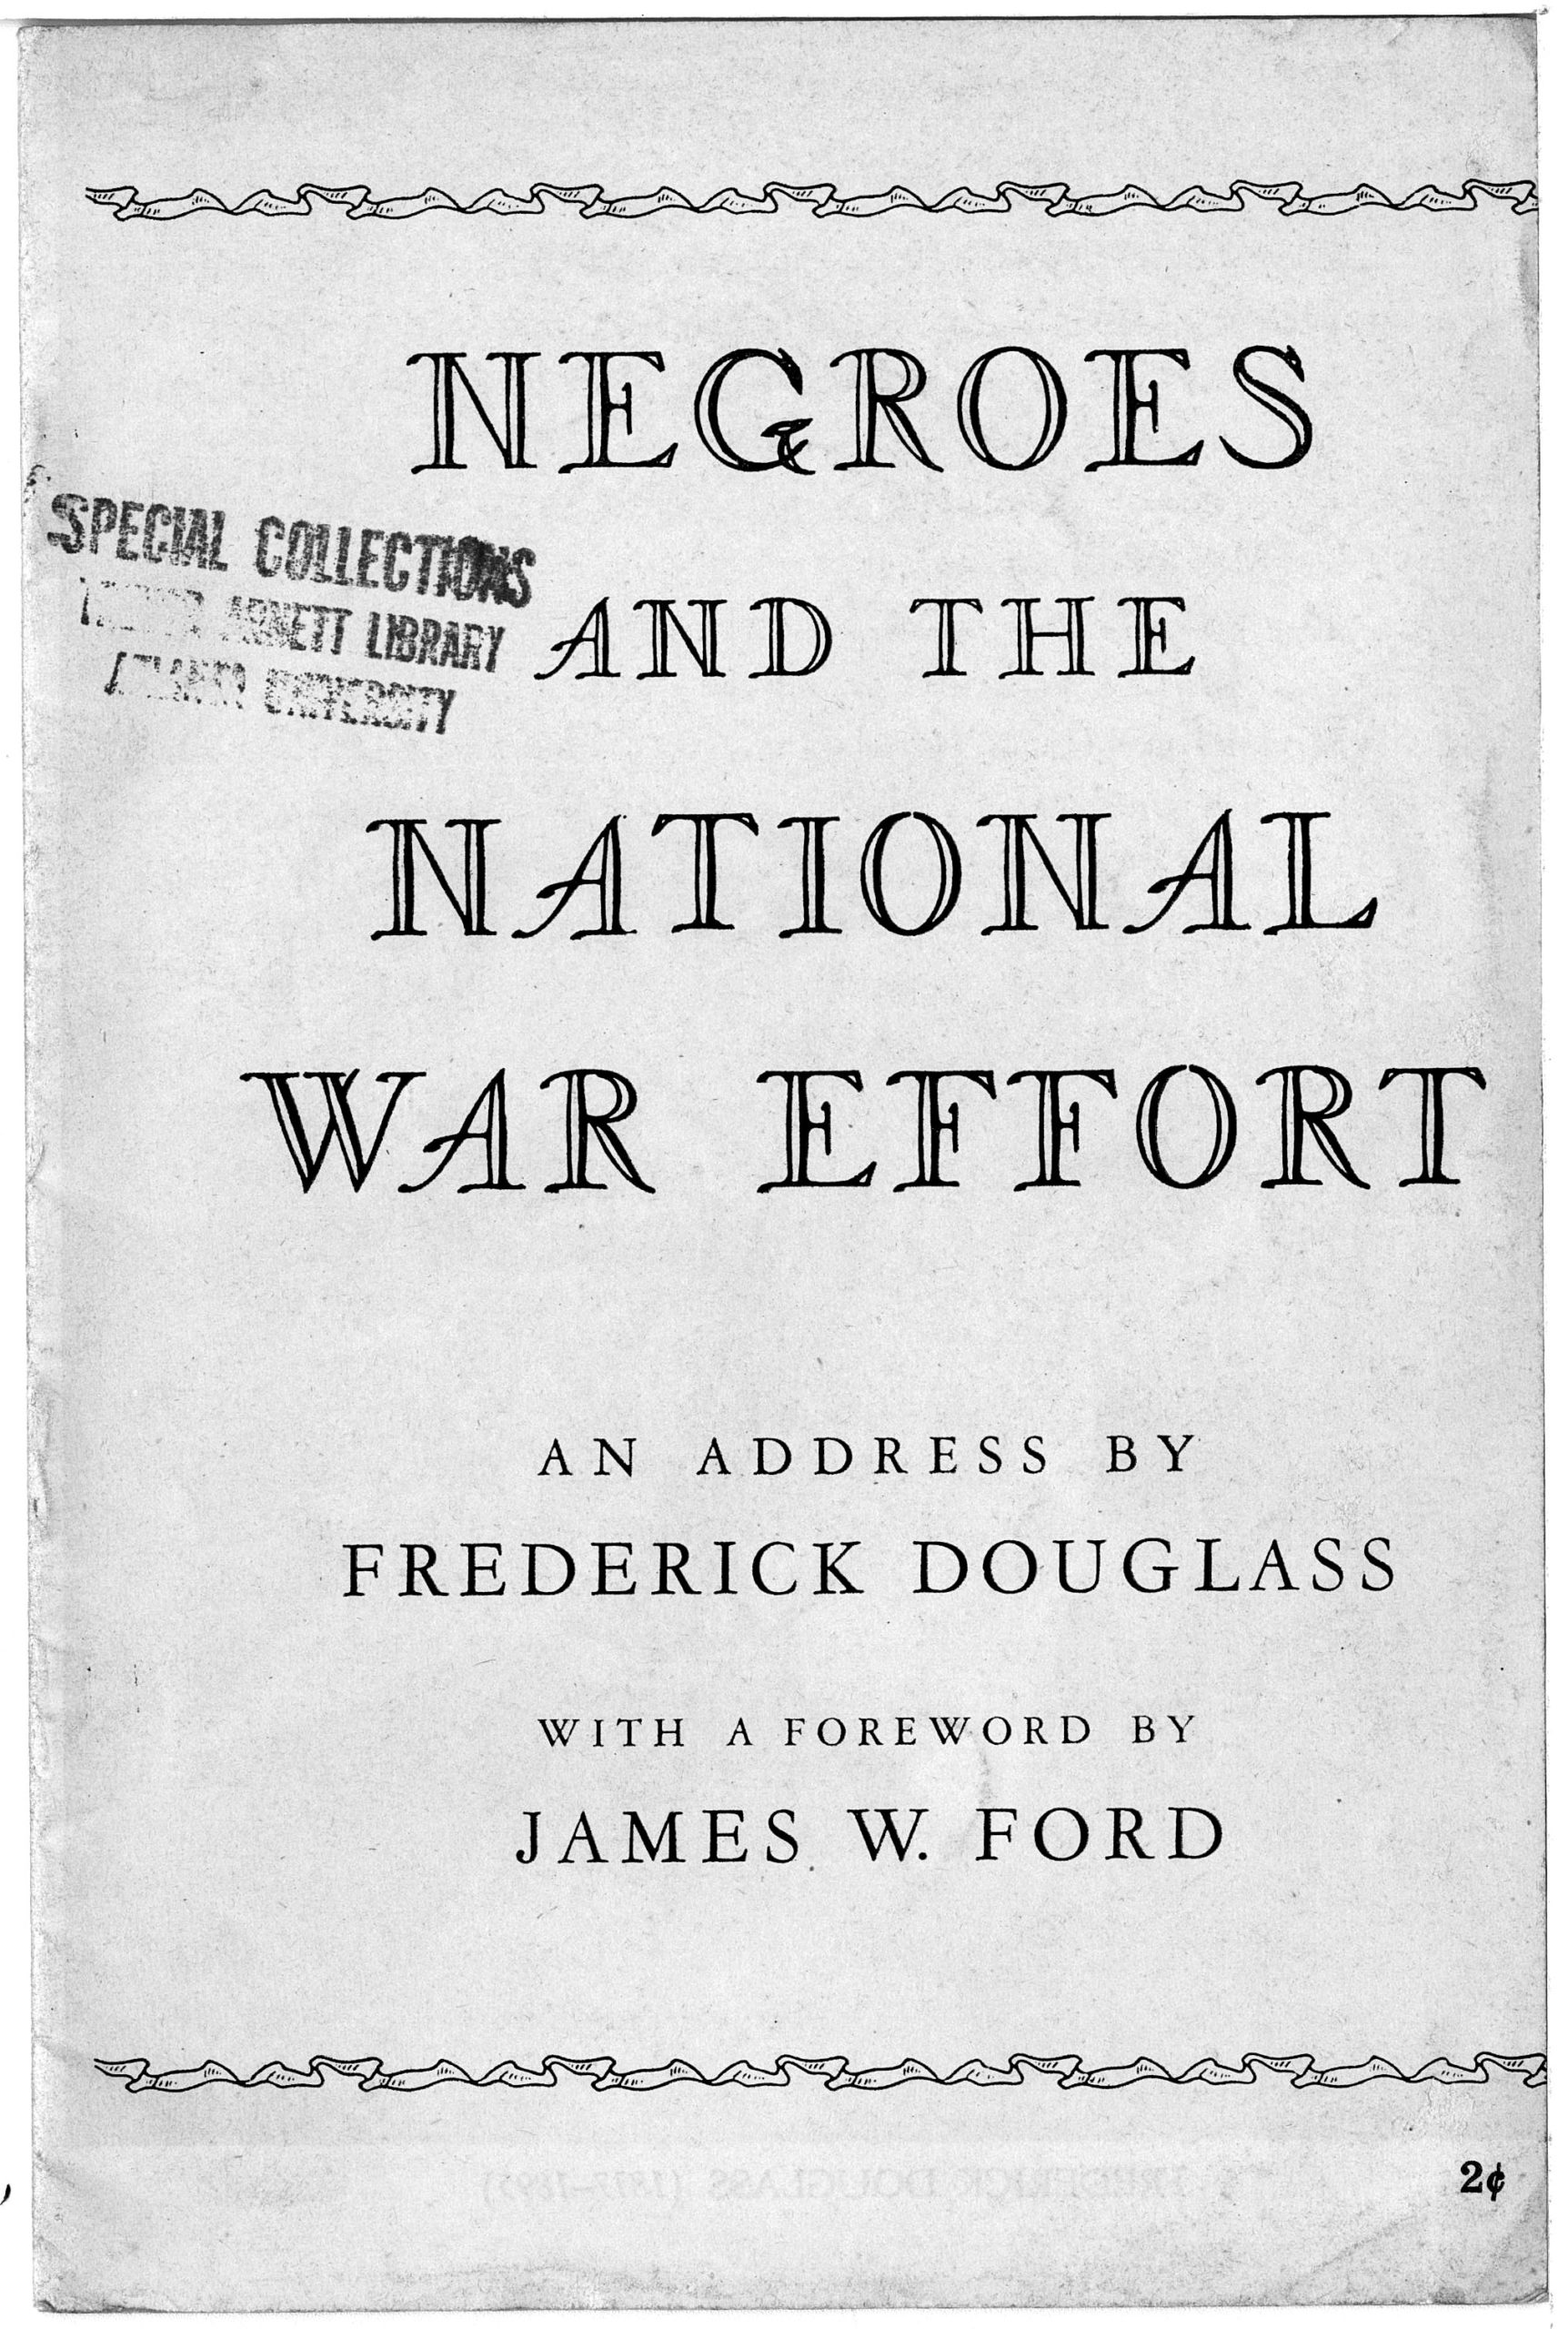 """Negroes and the National War Effort"", Douglass, Frederick, 1818-1895; Ford, James W., 1893-1957, circa 1939-1945, World War II Vertical File"